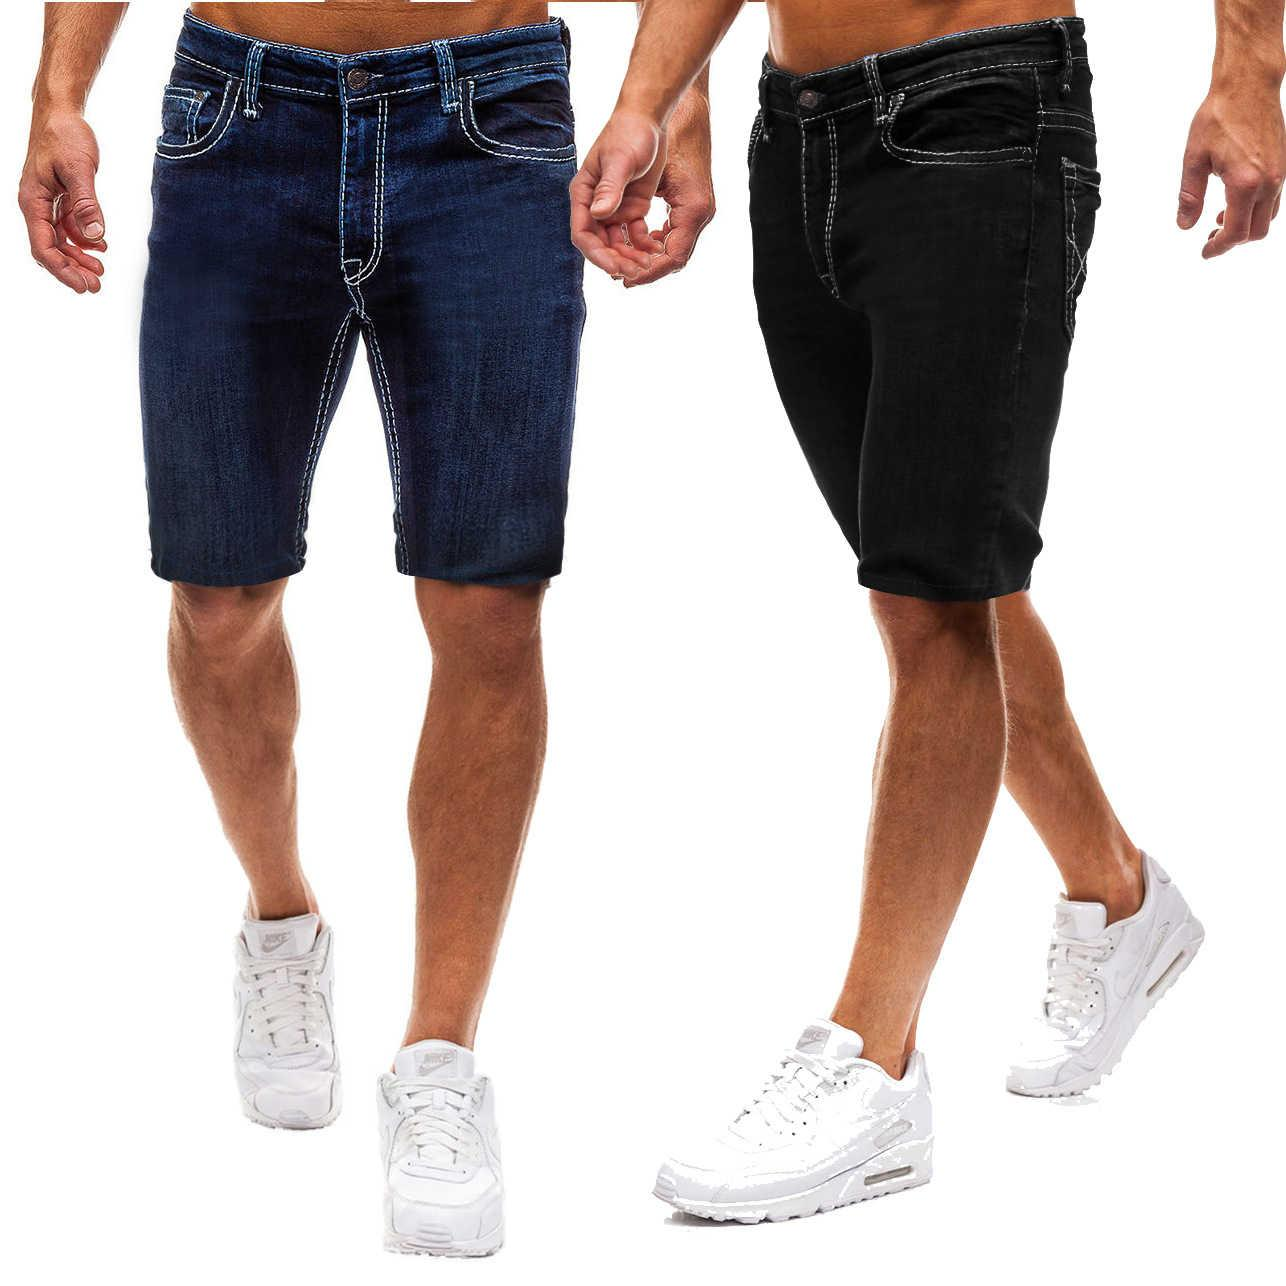 2019 New Jeans Solid Color Shorts Fashion Men's Casual Jeanskwg5